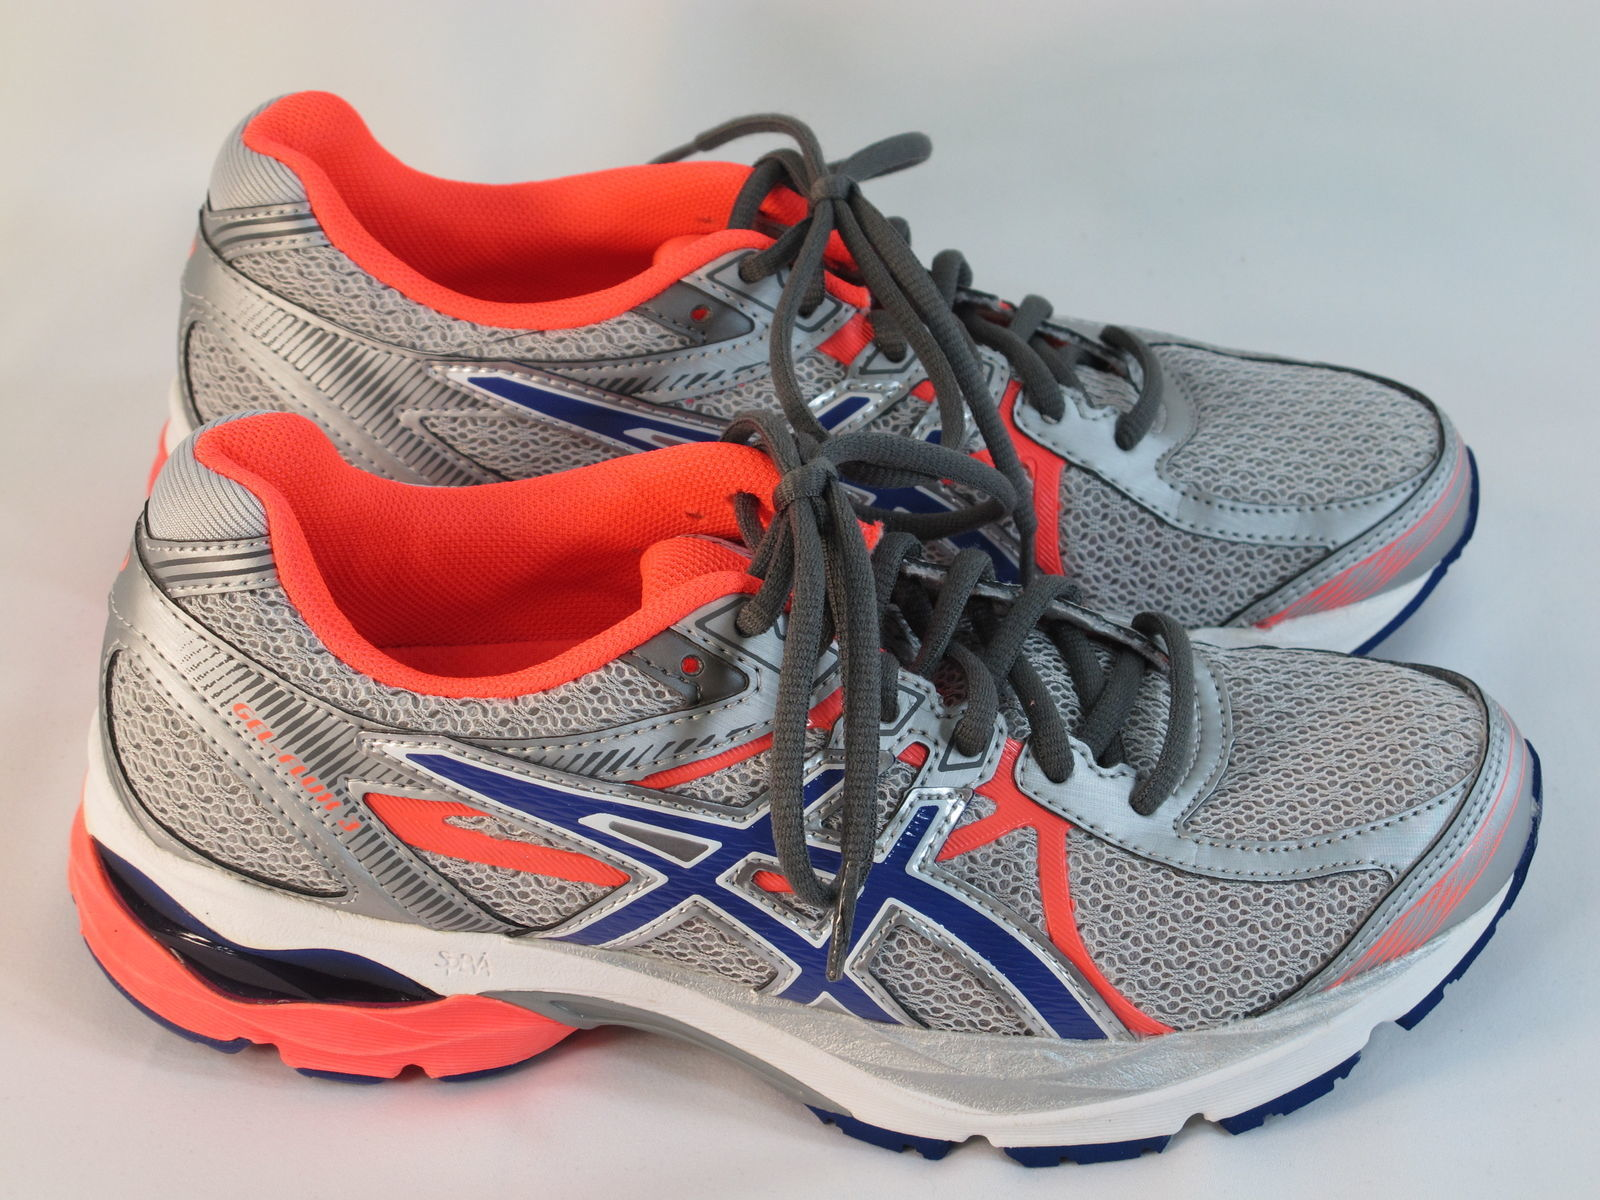 ASICS Gel Flux 3 Running Shoes Women's Size 7 US Near Mint Condition - $51.11